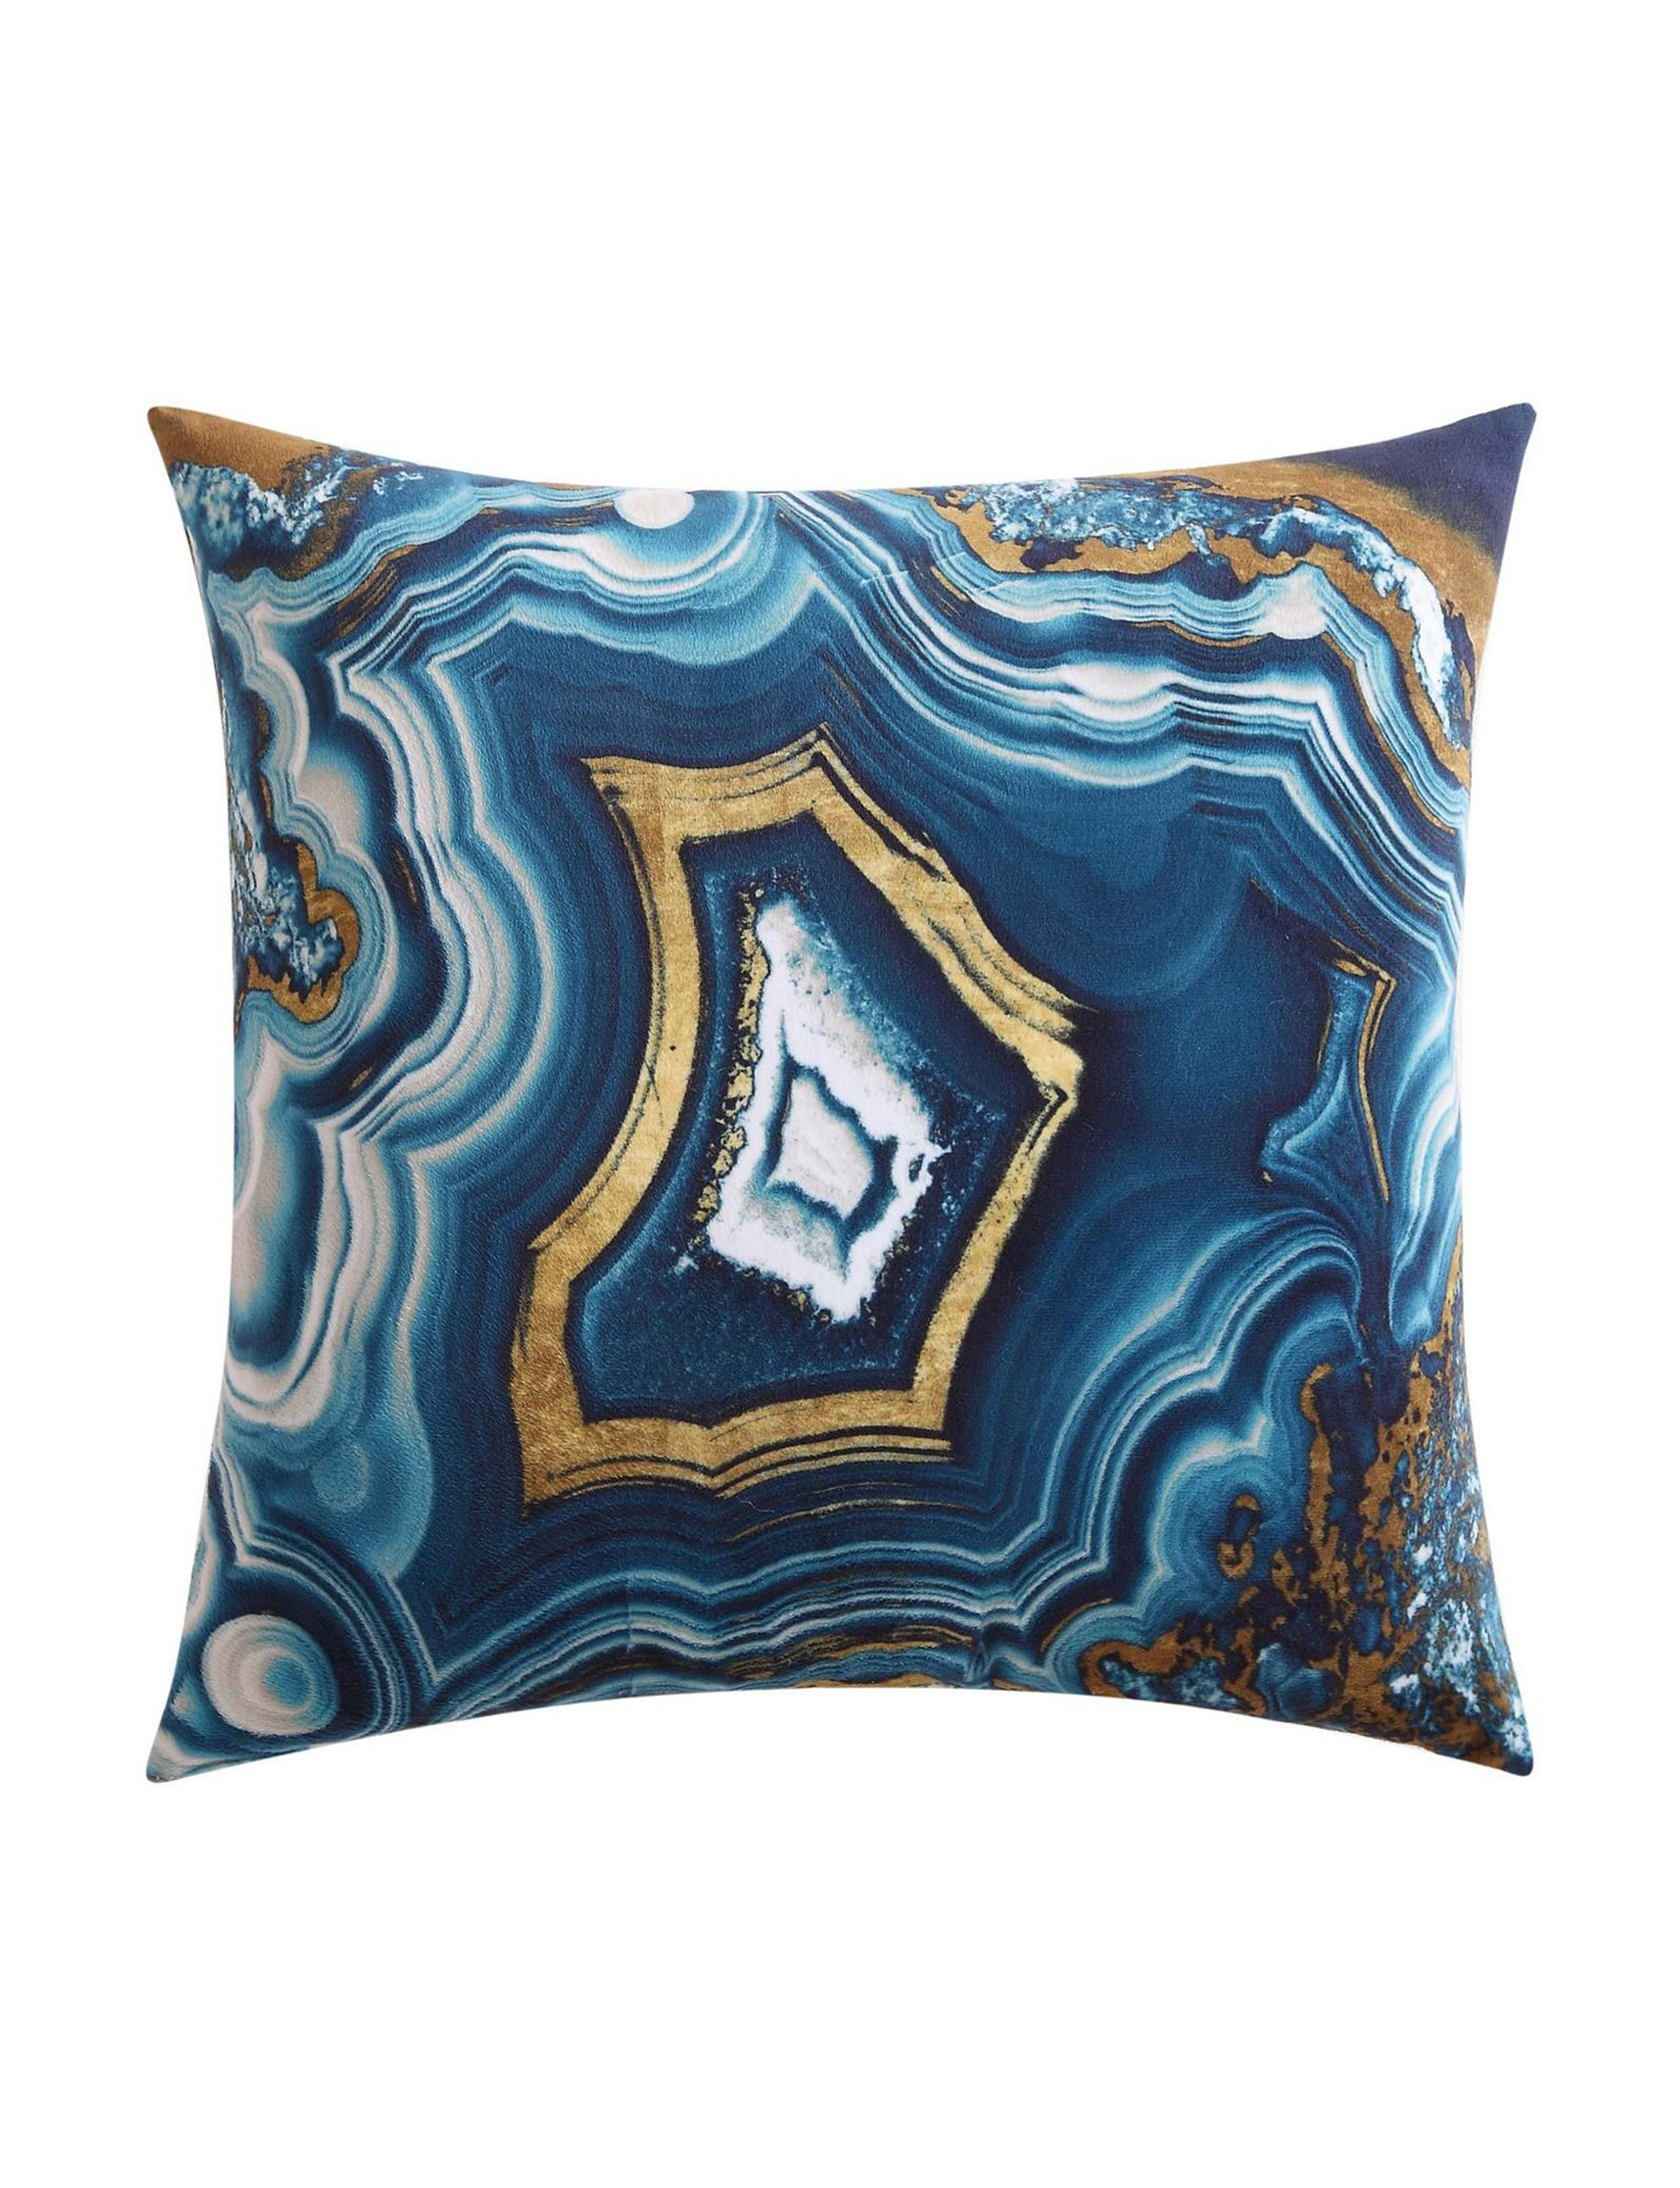 Oliver Gal Blue Decorative Pillows